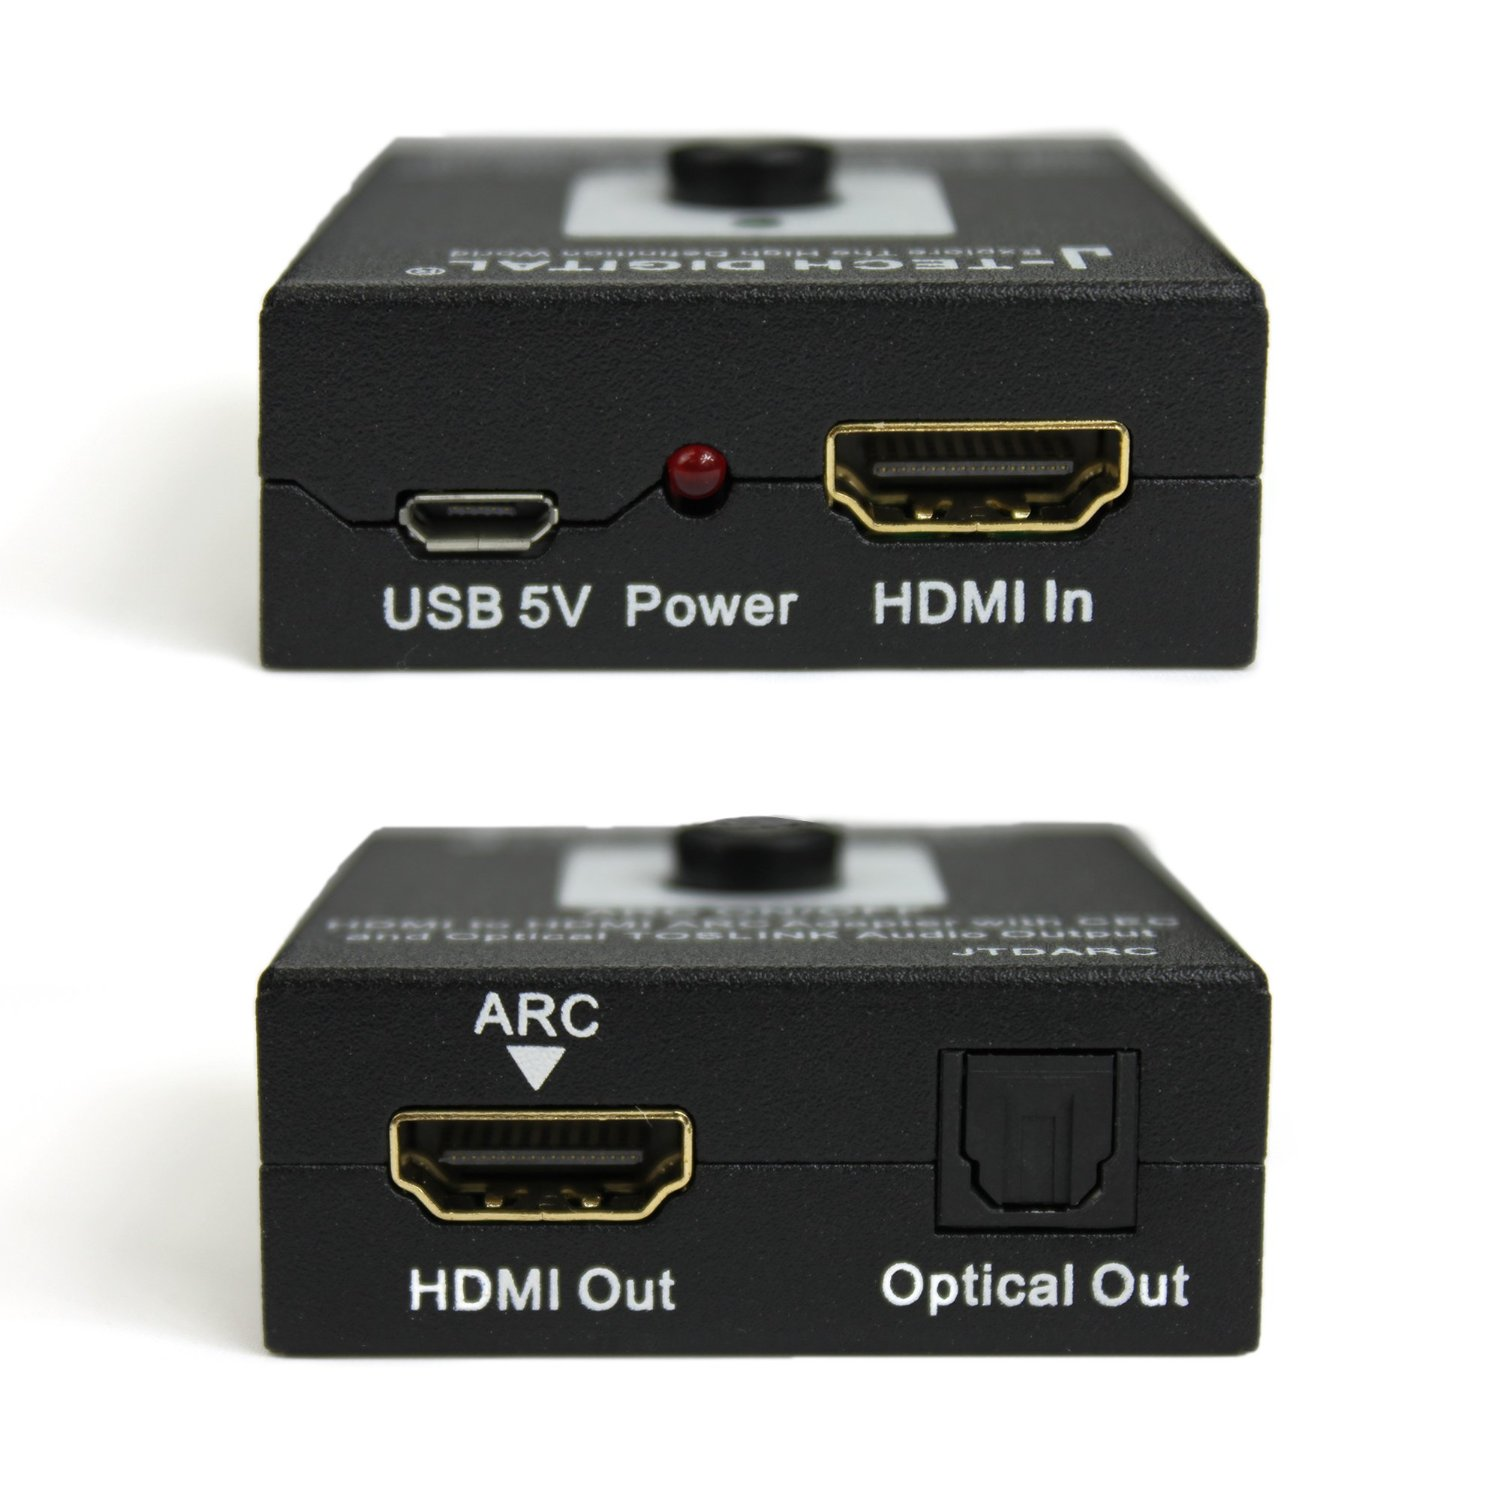 Hdmi Arc J Tech Digital Reg Hdmi To Hdmi Arc Adapter With Cec And Optical